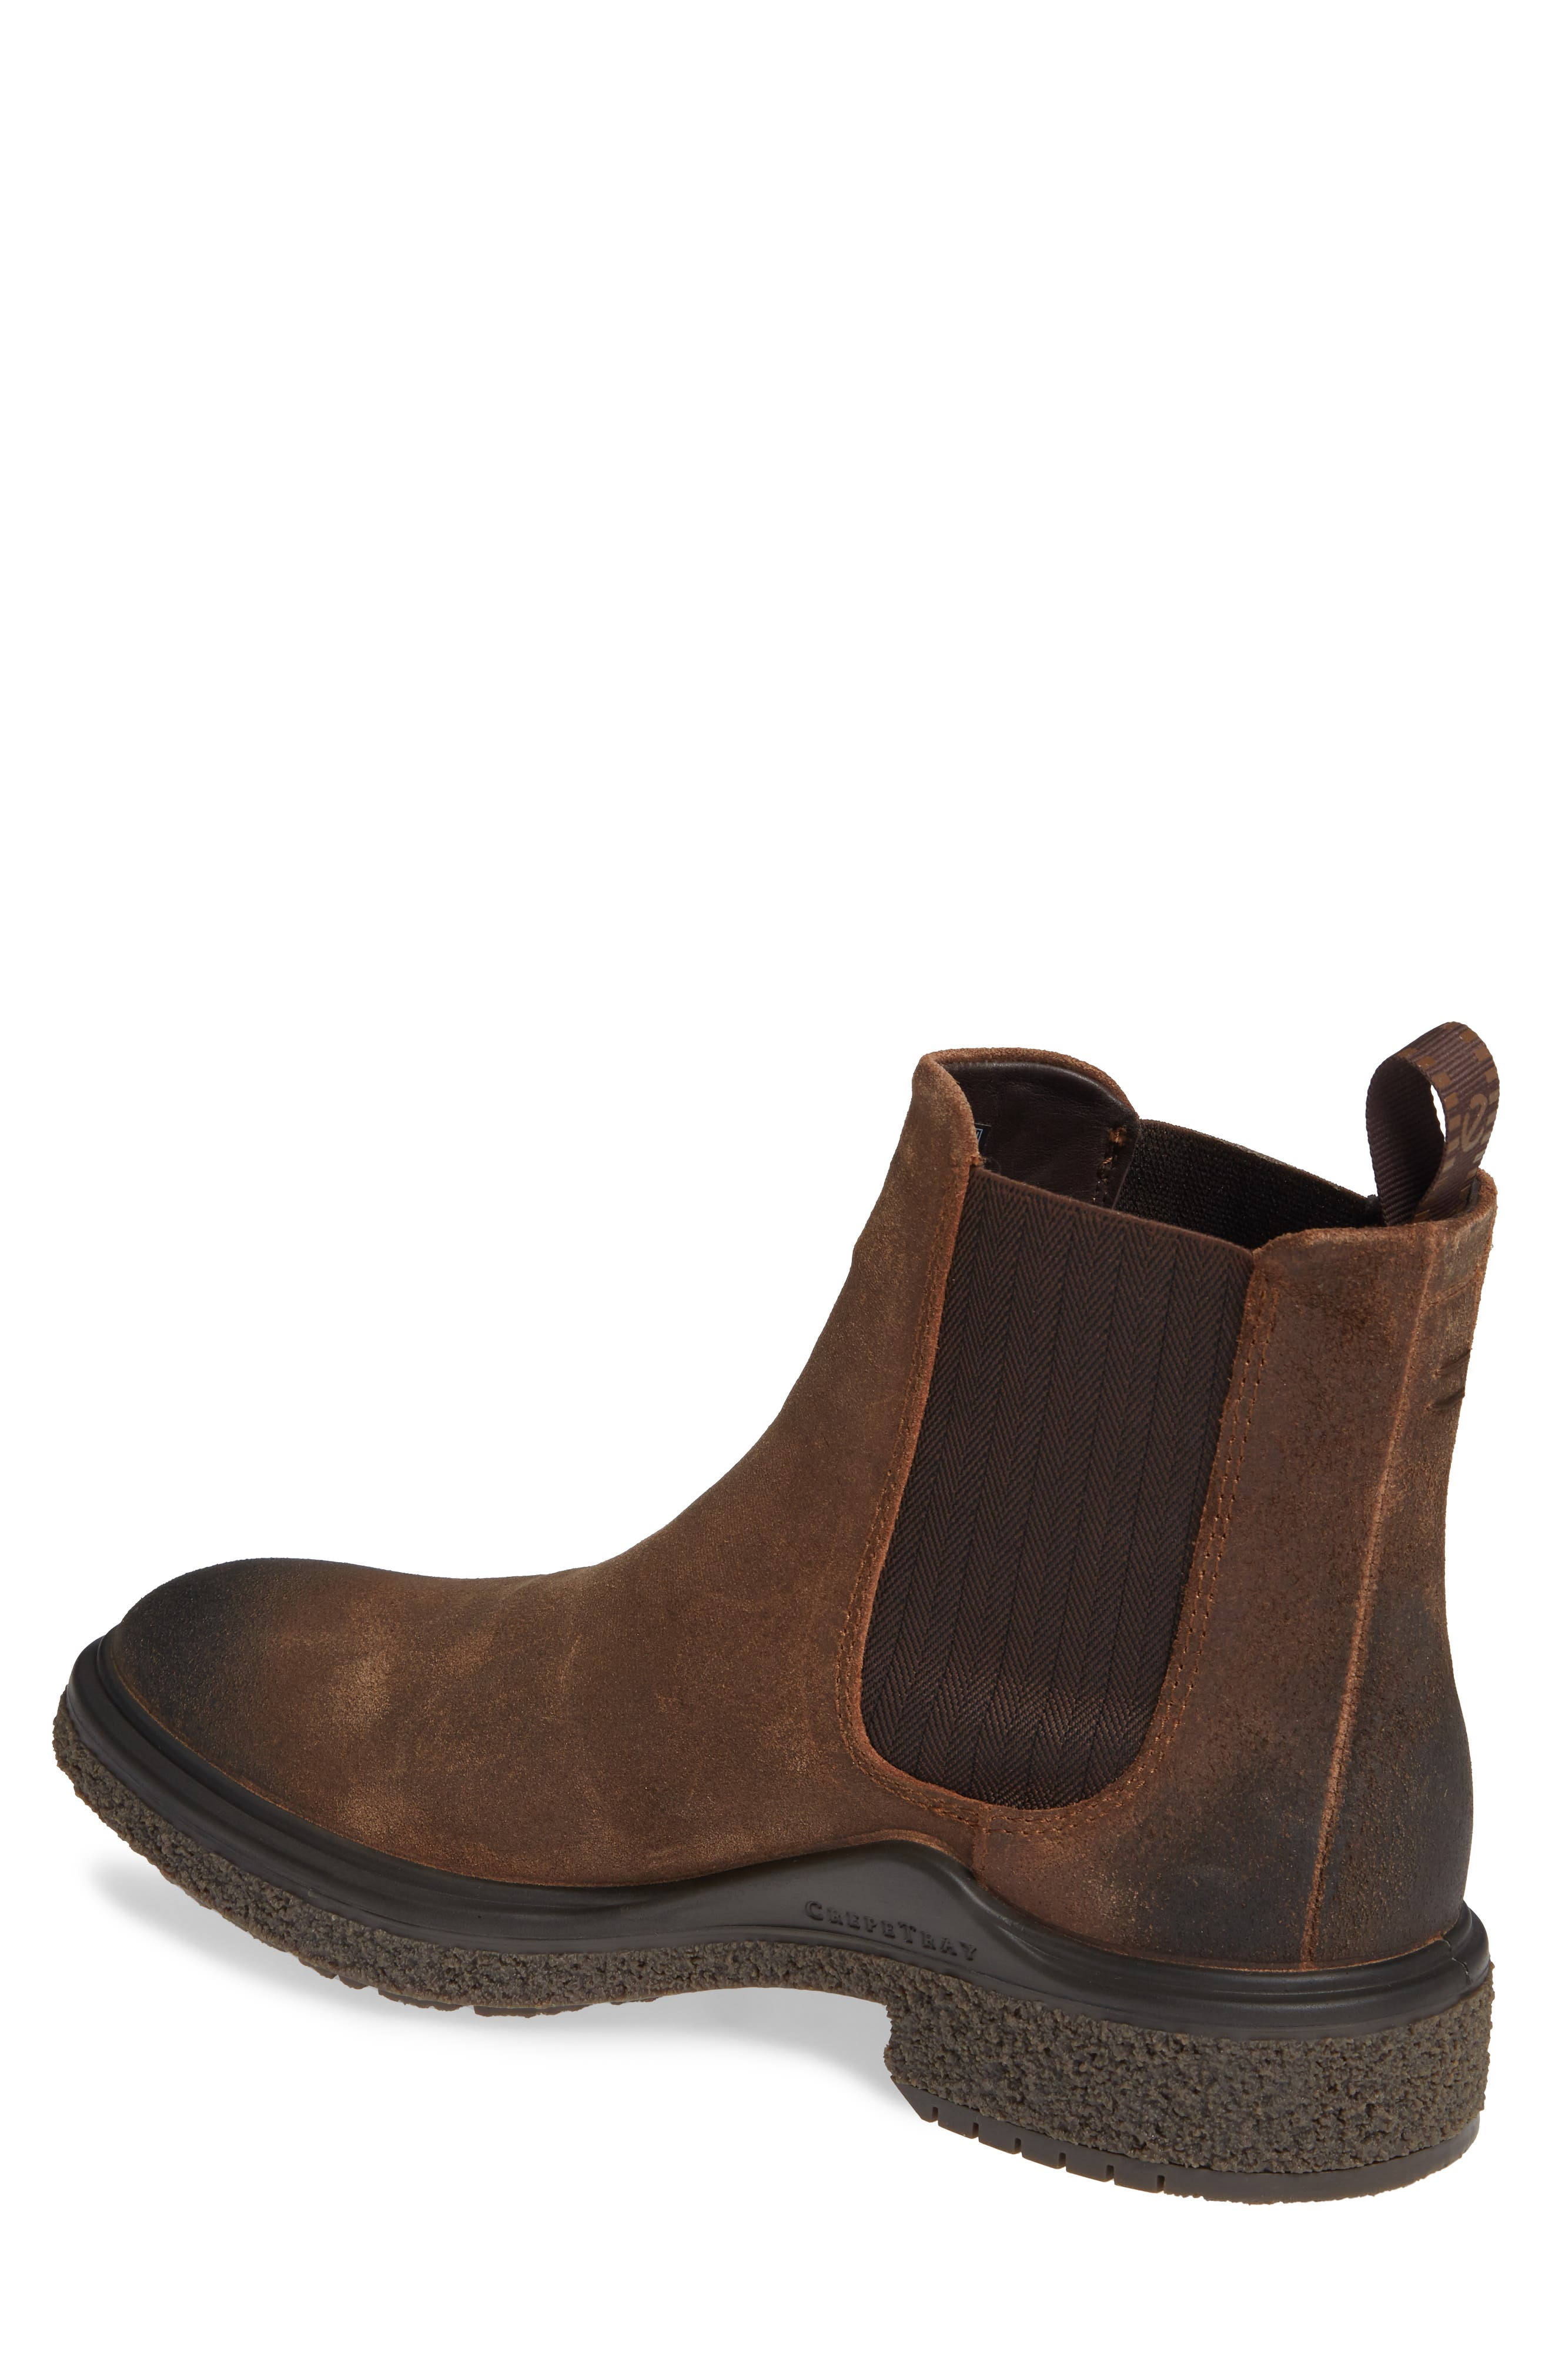 Crepetray Chelsea Boot,                             Alternate thumbnail 2, color,                             201